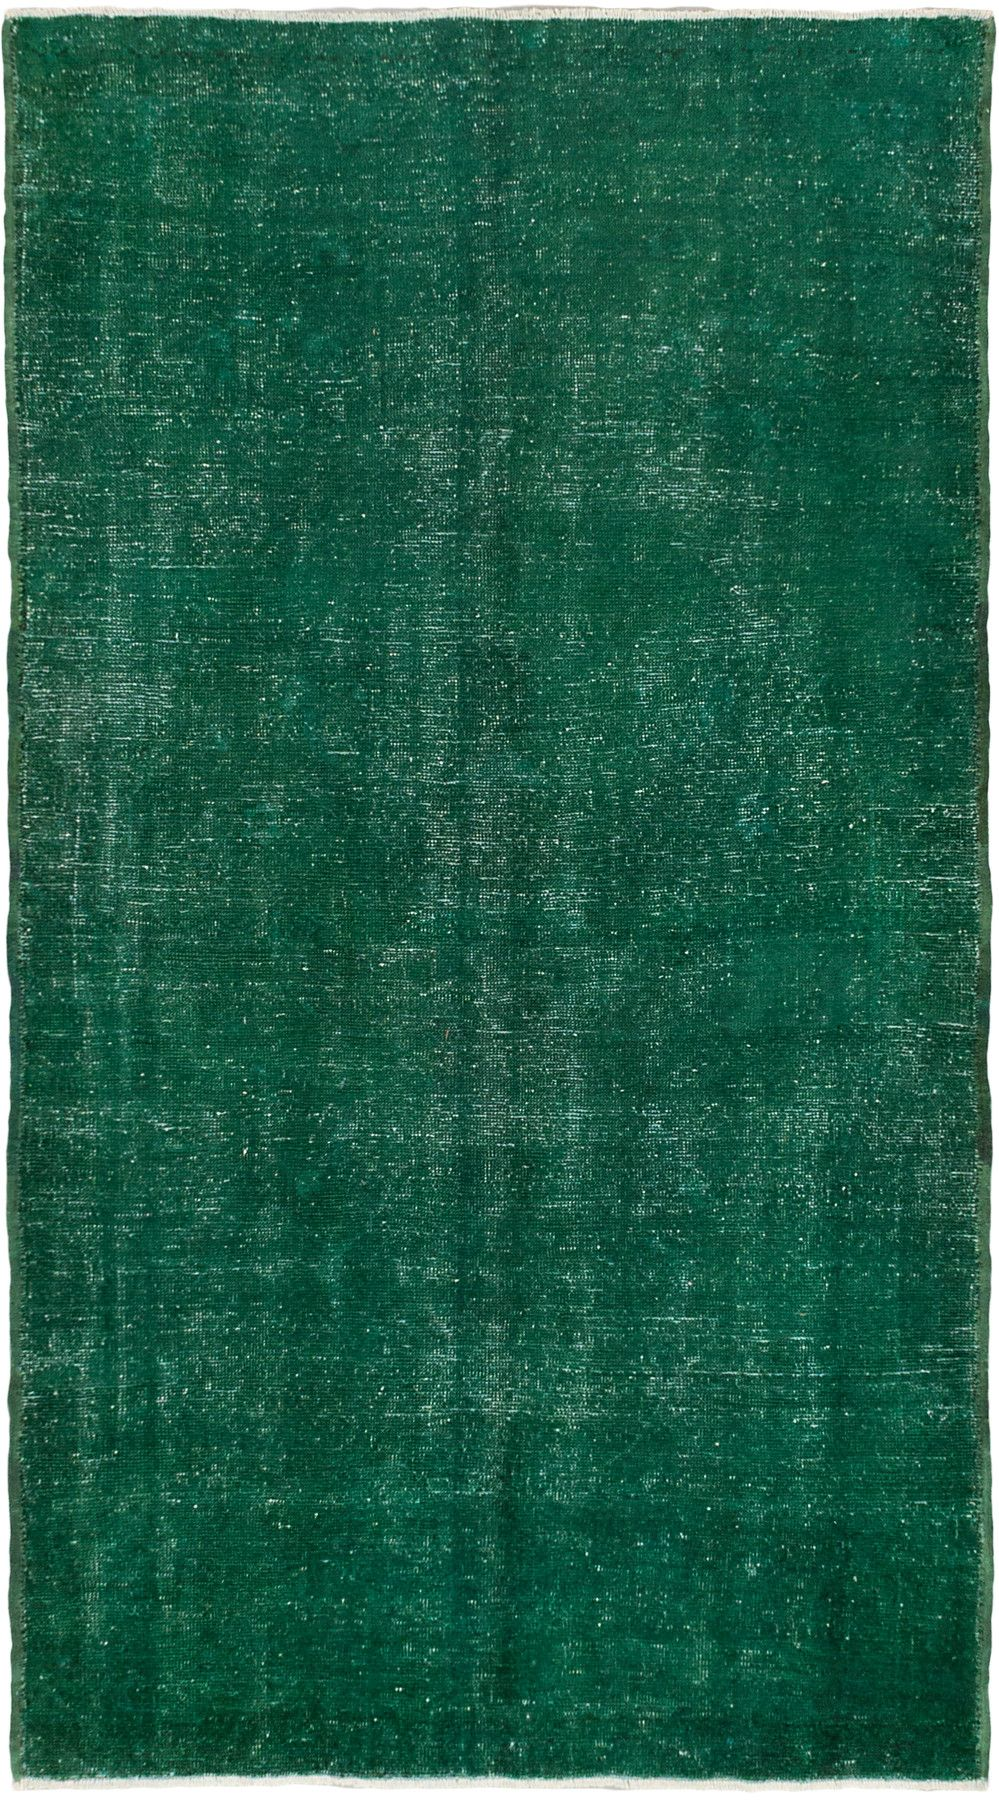 41439bfa0b4c3714d4e4b5962eb684d1 - Emerald Green Area Rug Will Be A Thing Of The Past And Here's Why